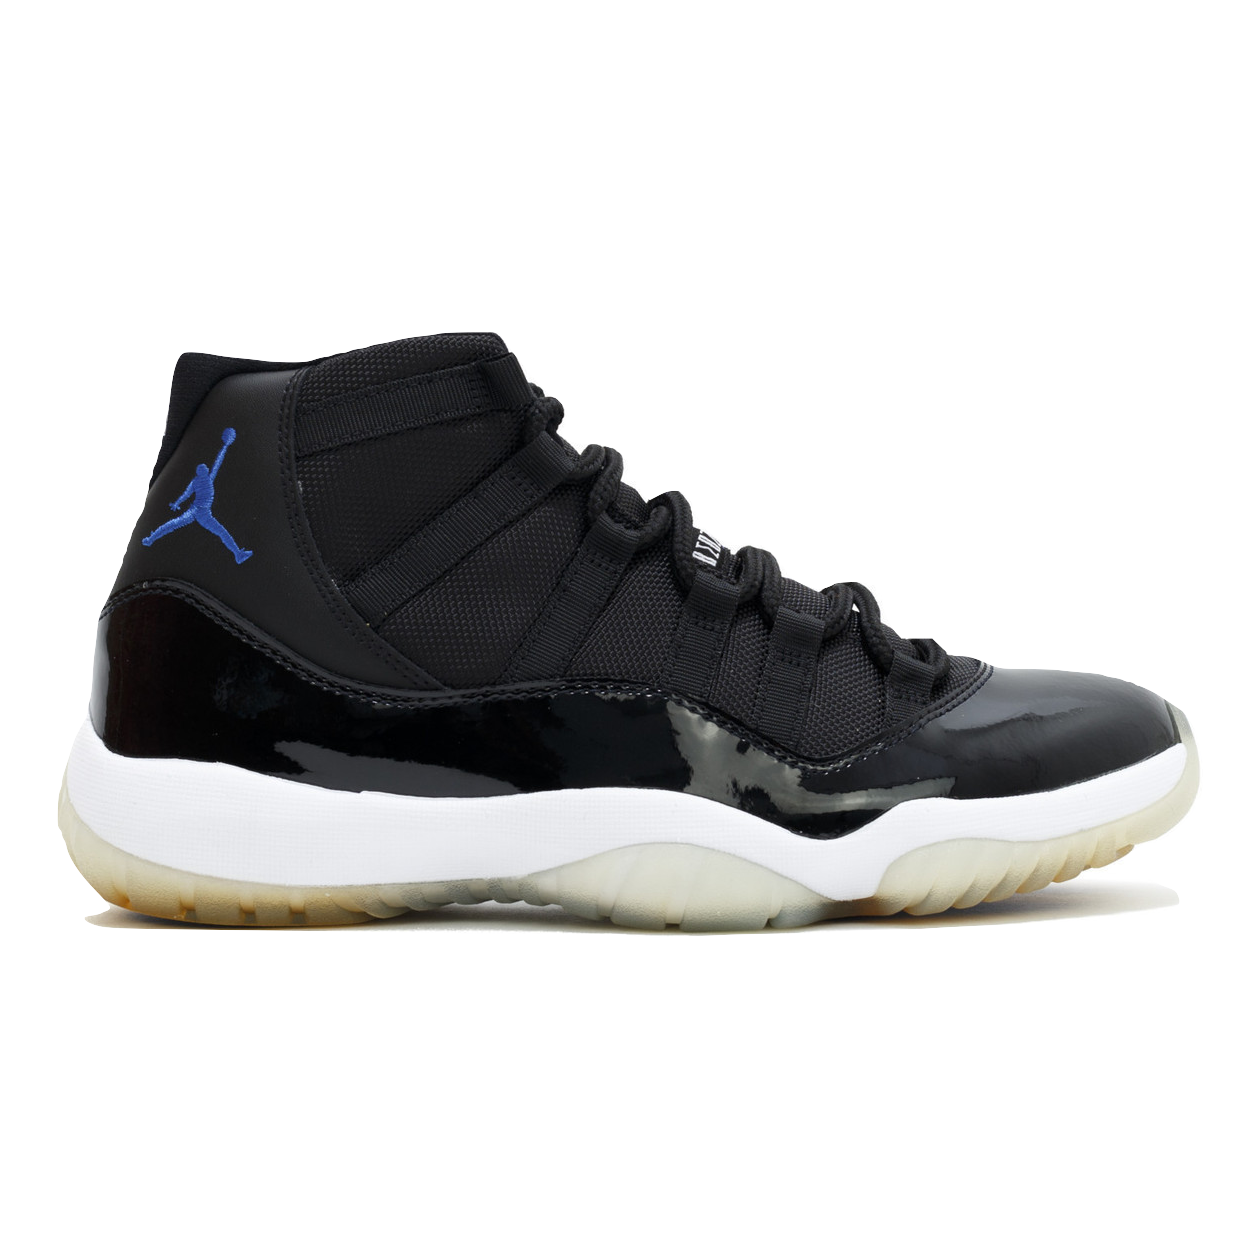 Air Jordan 11 Retro - Space Jam (2009)